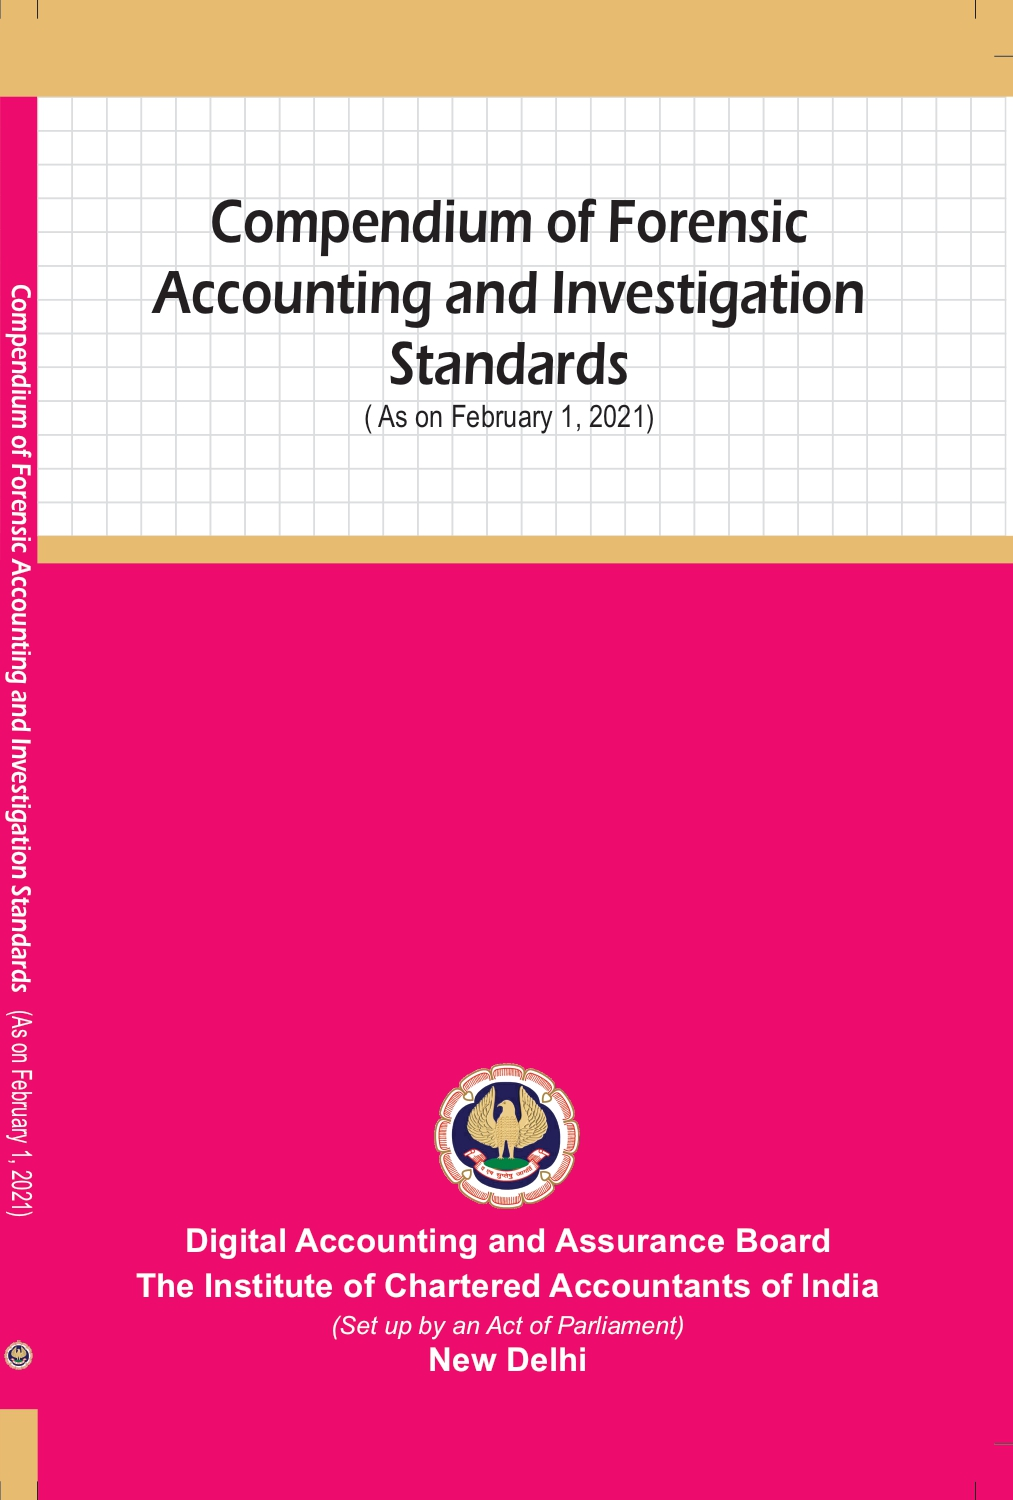 Compendium of Forensic Accounting and Investigation Standards (As on February 1, 2021)